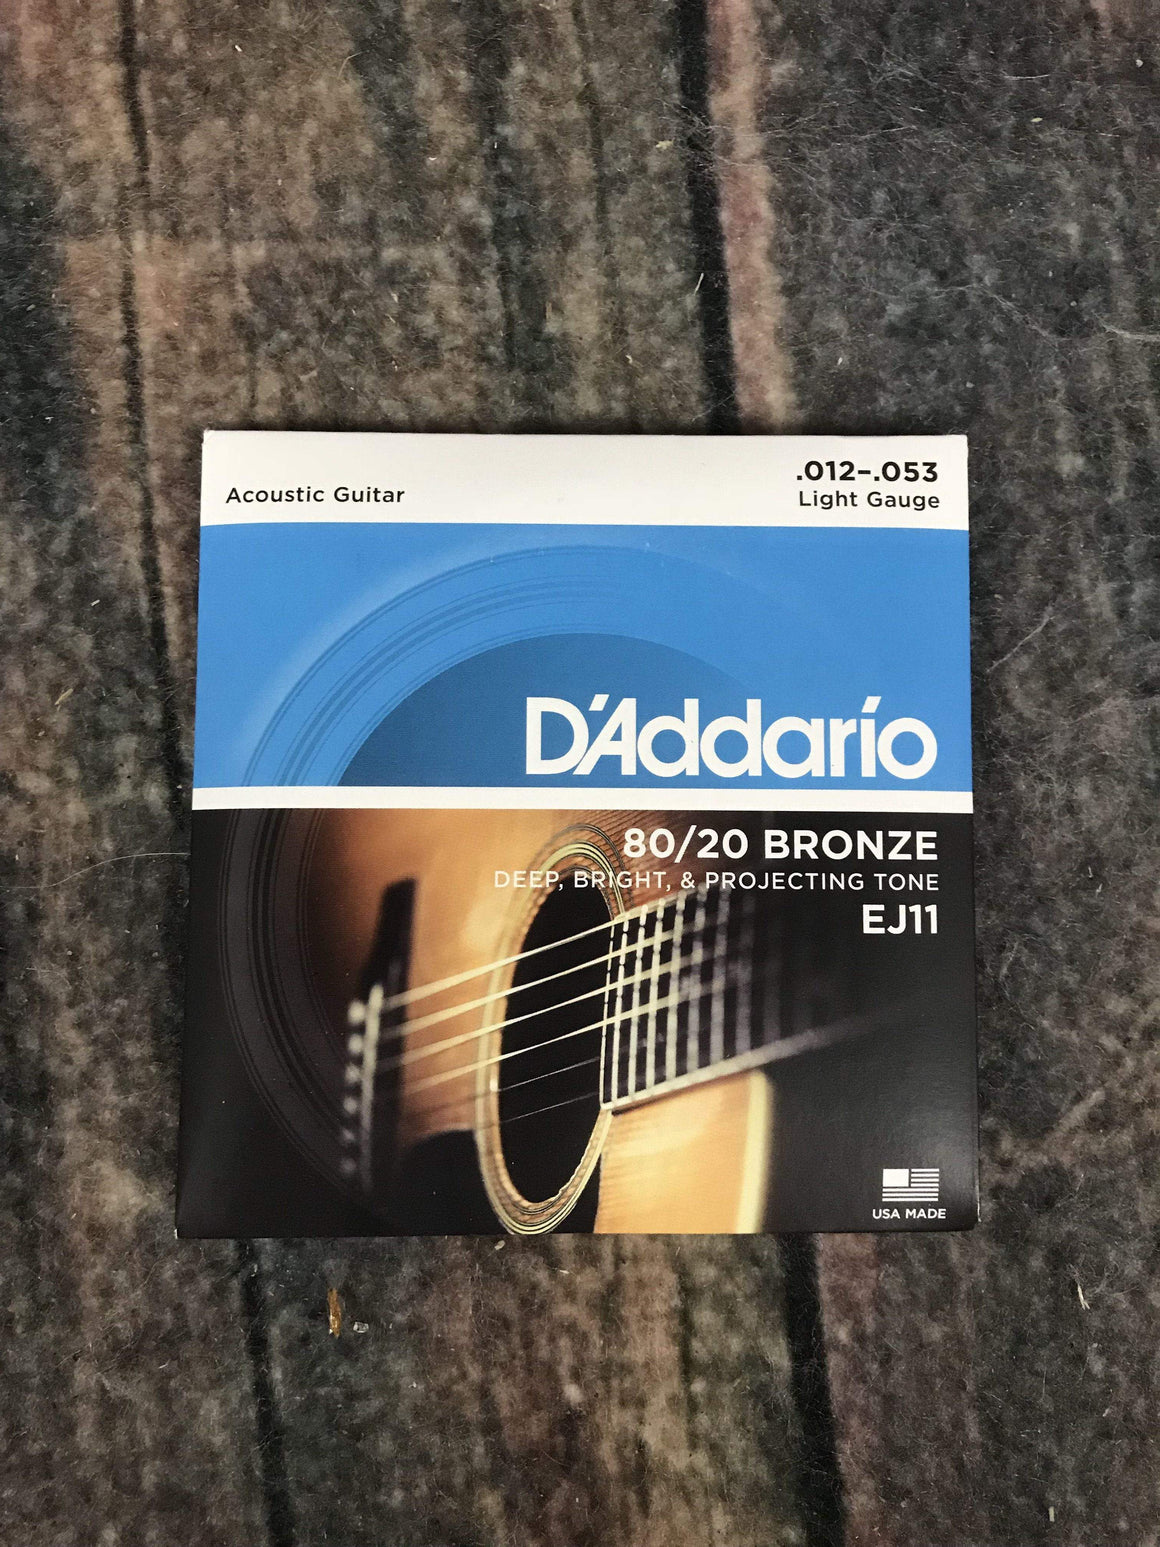 D'Addario Acoustic Guitar Strings D'Addario EJ11 80/20 Bronze Light Gauge Acoustic Guitar Strings